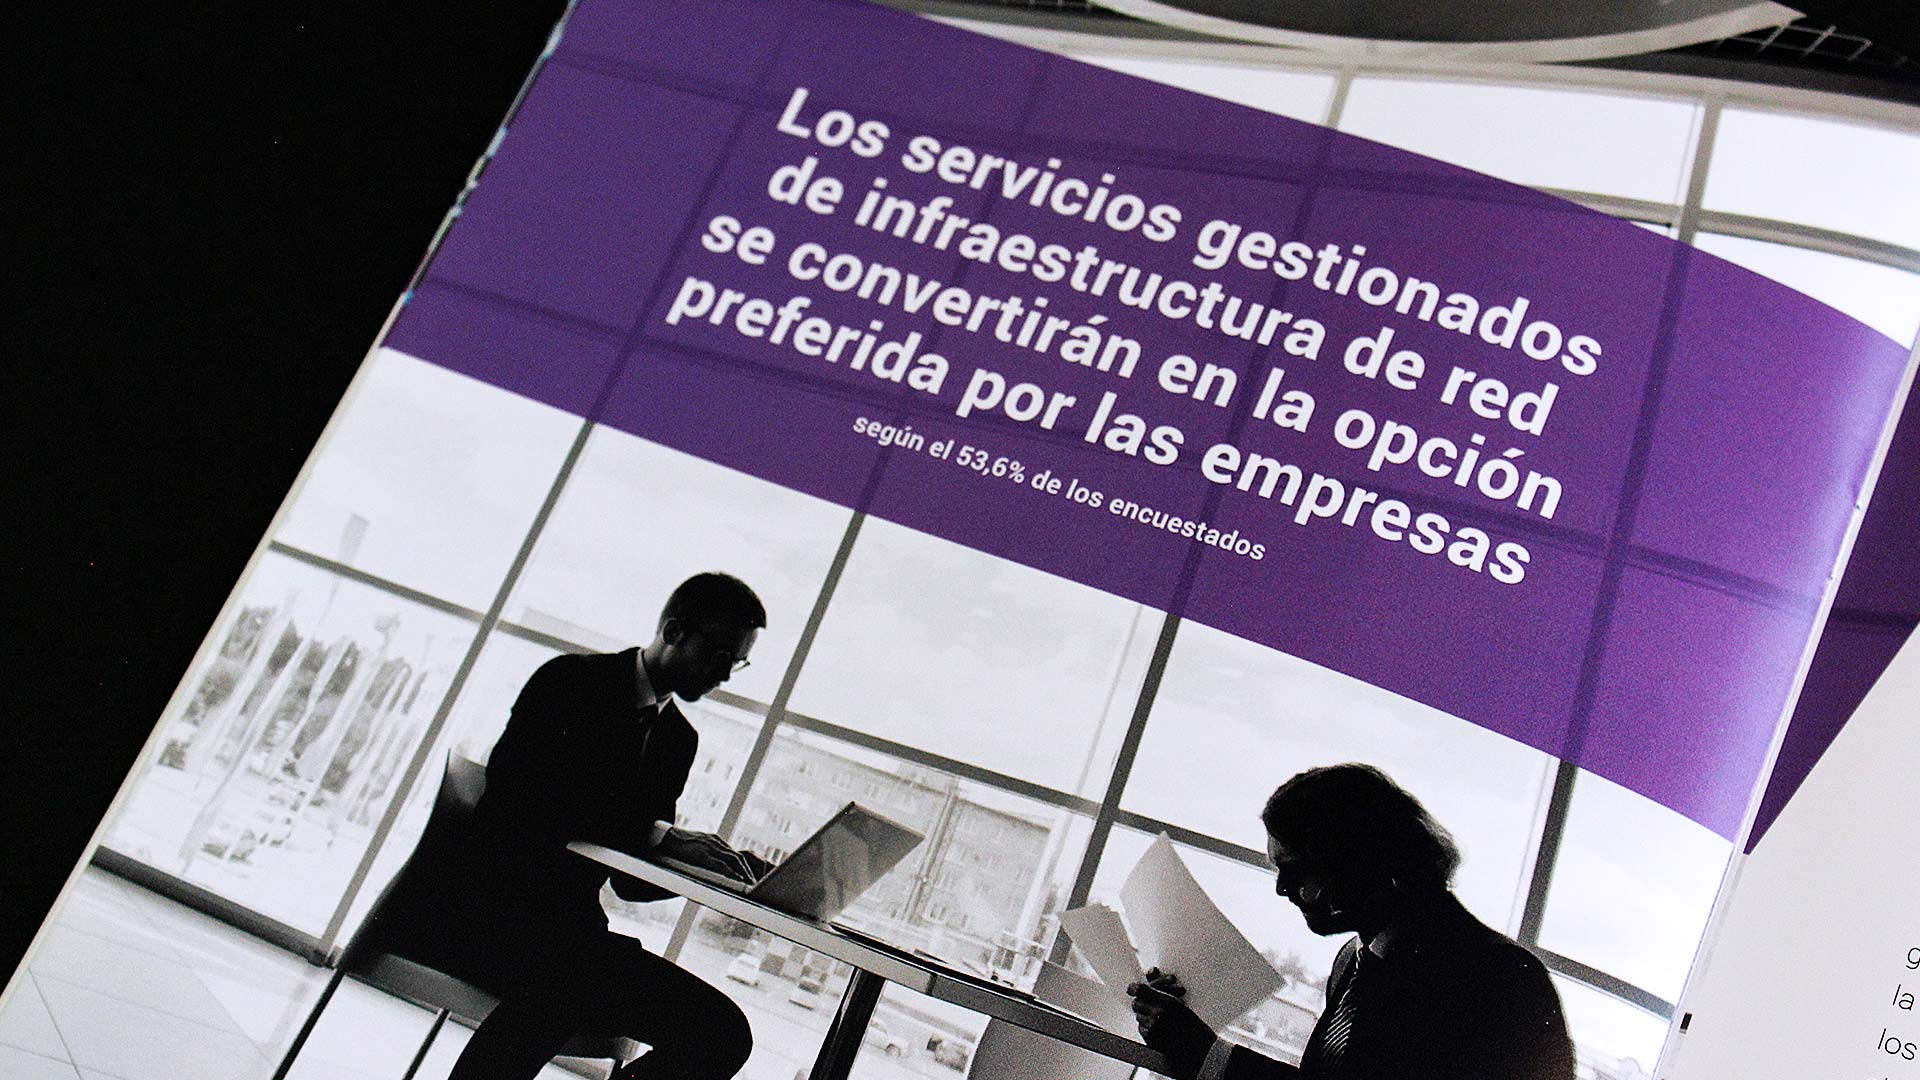 alcatel-content-marketing-informe-resumen-ejecutivo-networkondemand-ebook-2016-19